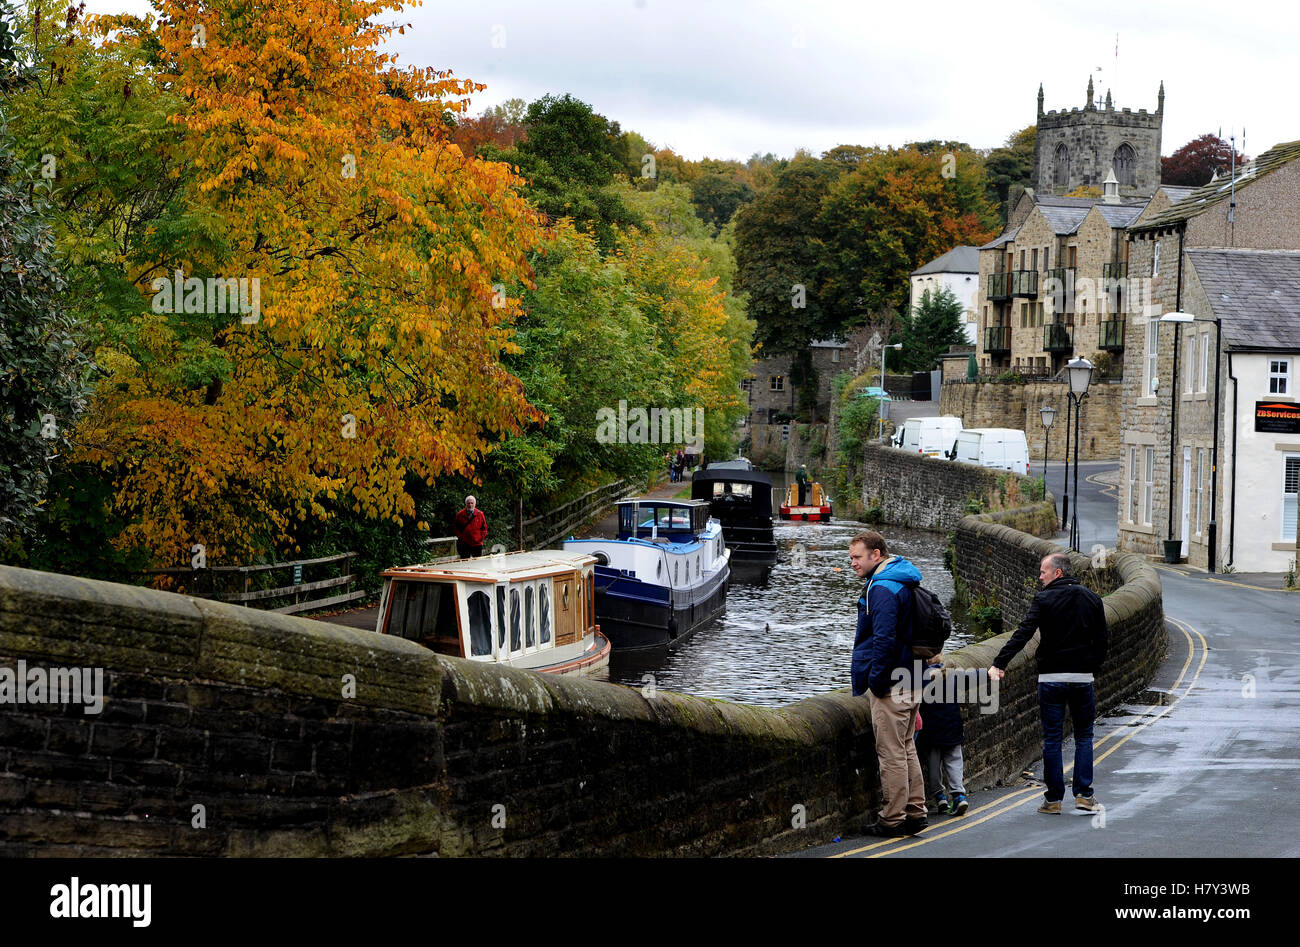 Leeds-Liverpool Canal, Skipton, District of Craven, North Yorkshire. England UK. Picture by Paul Heyes, Monday October - Stock Image